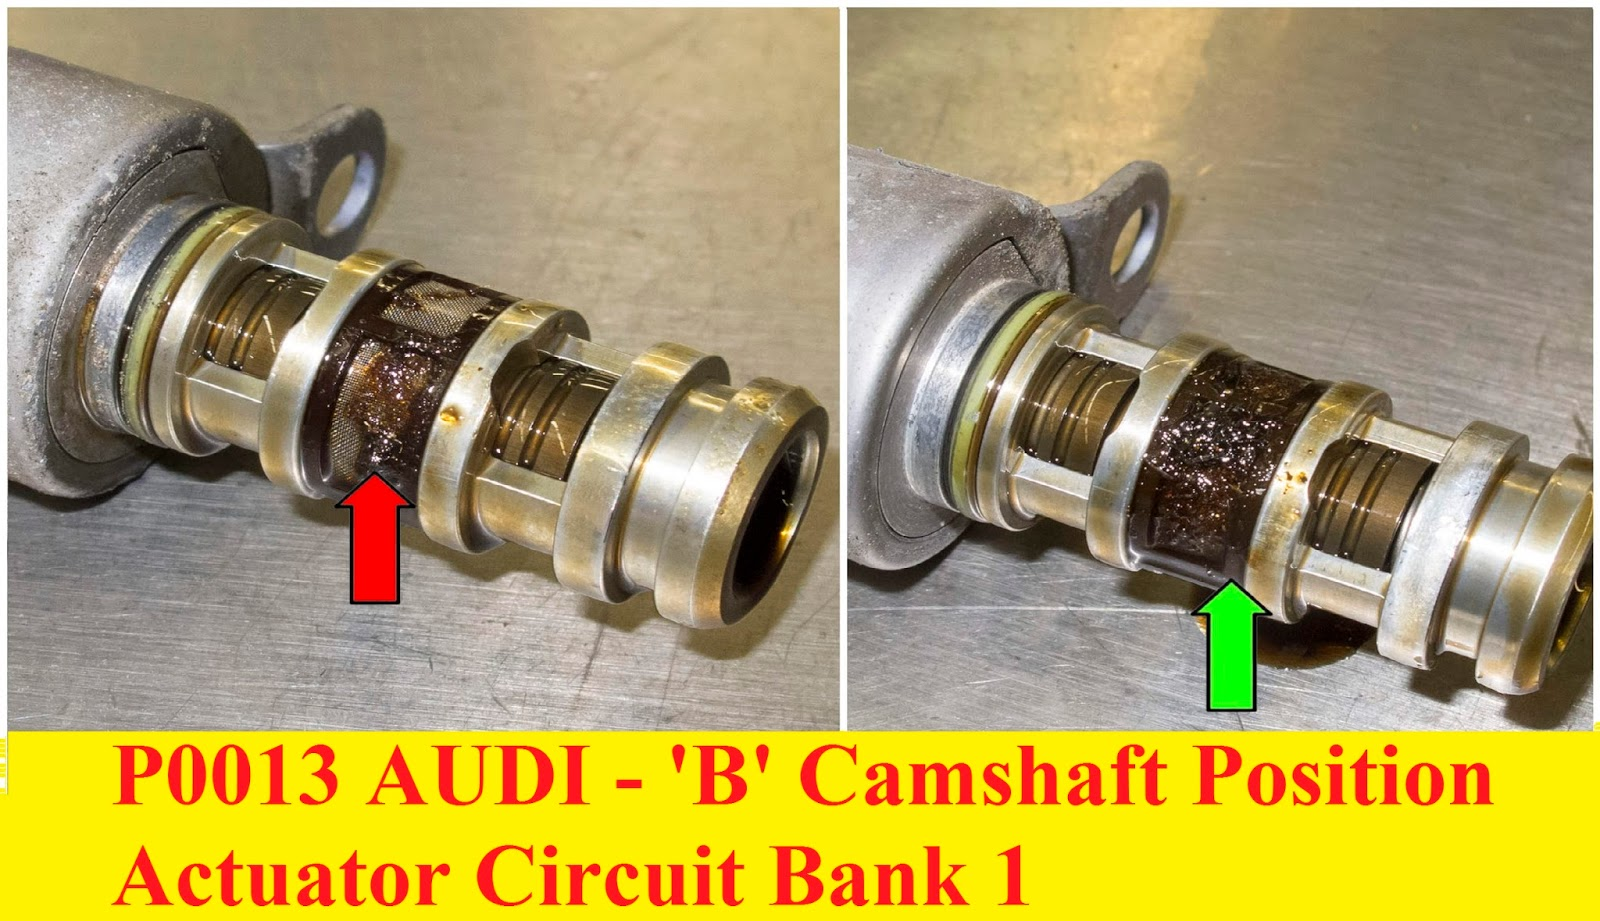 Pic furthermore Cp Rh Exterior Door Handle Cap Trim Vw Passat B Lb M Blue C together with Maxresdefault as well Zps C C further Brake System Red. on audi oil sensor warning light